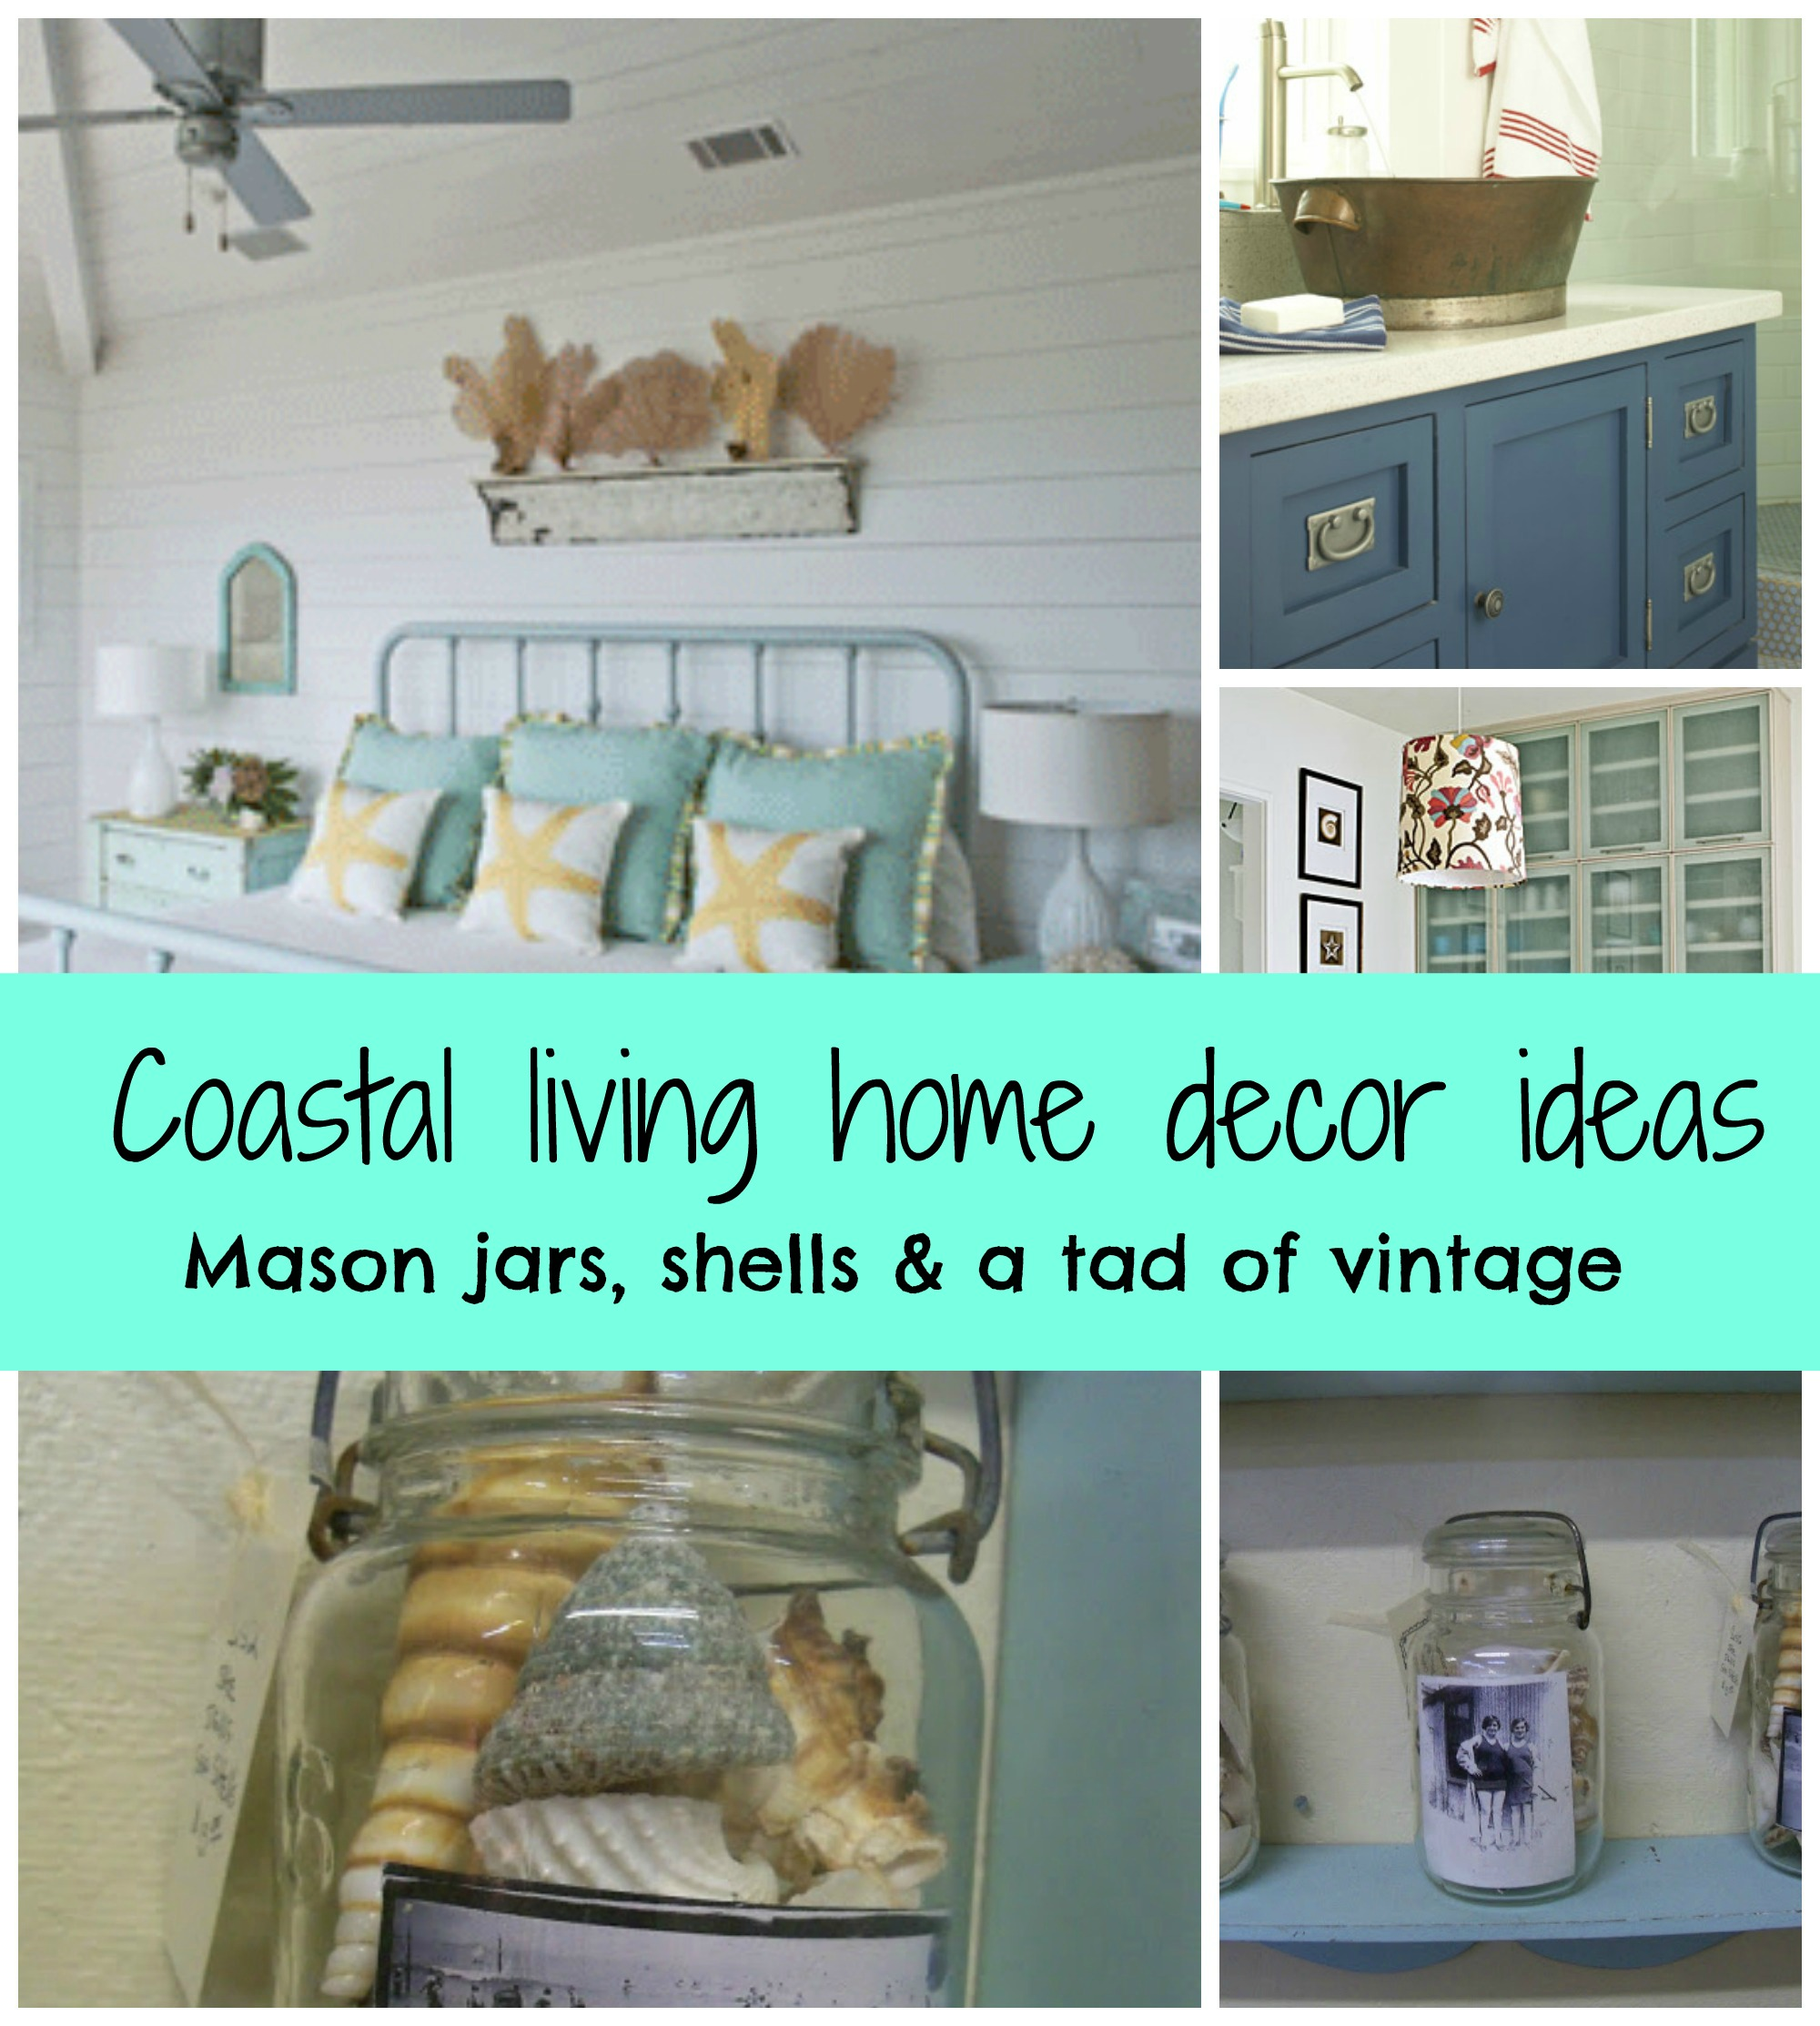 Coastal living nifty decor ideas | Debbiedoo's